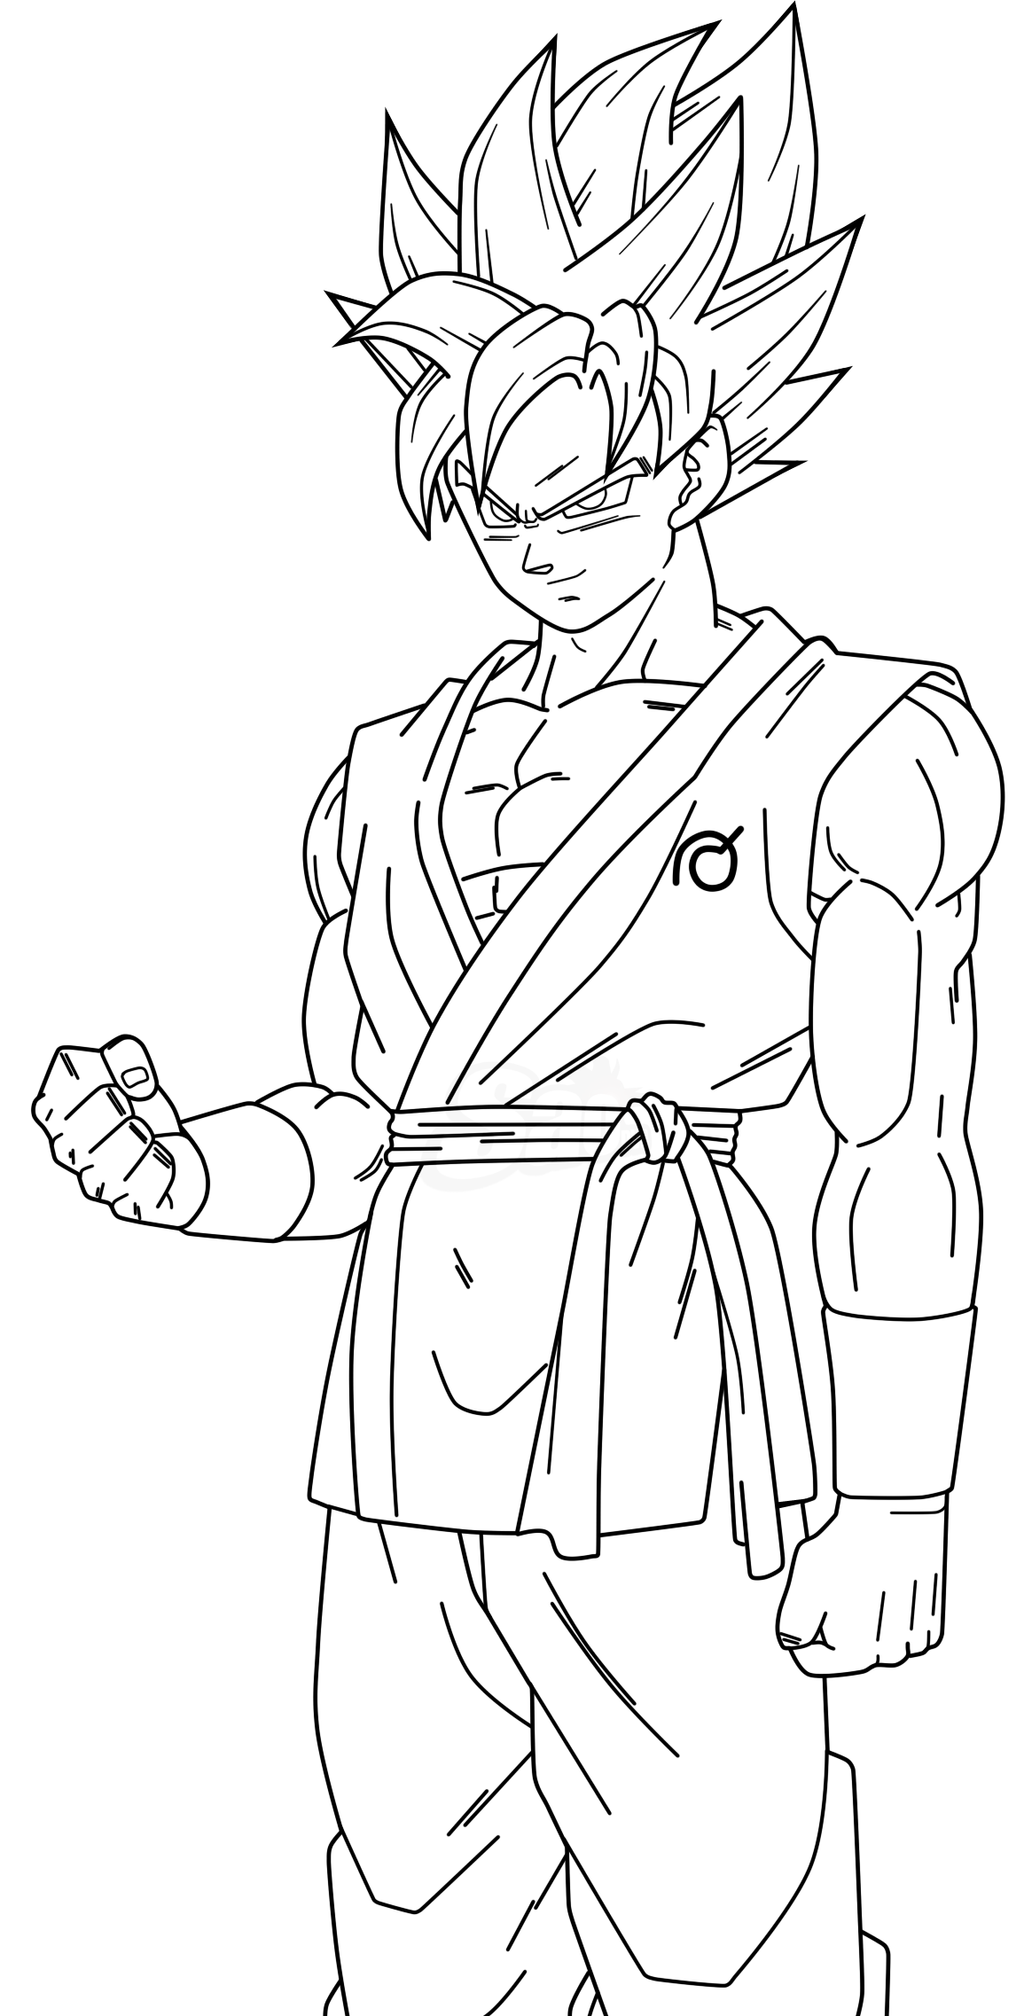 Goku ssj blue lineart 2 by saodvd on deviantart for Goku coloring page